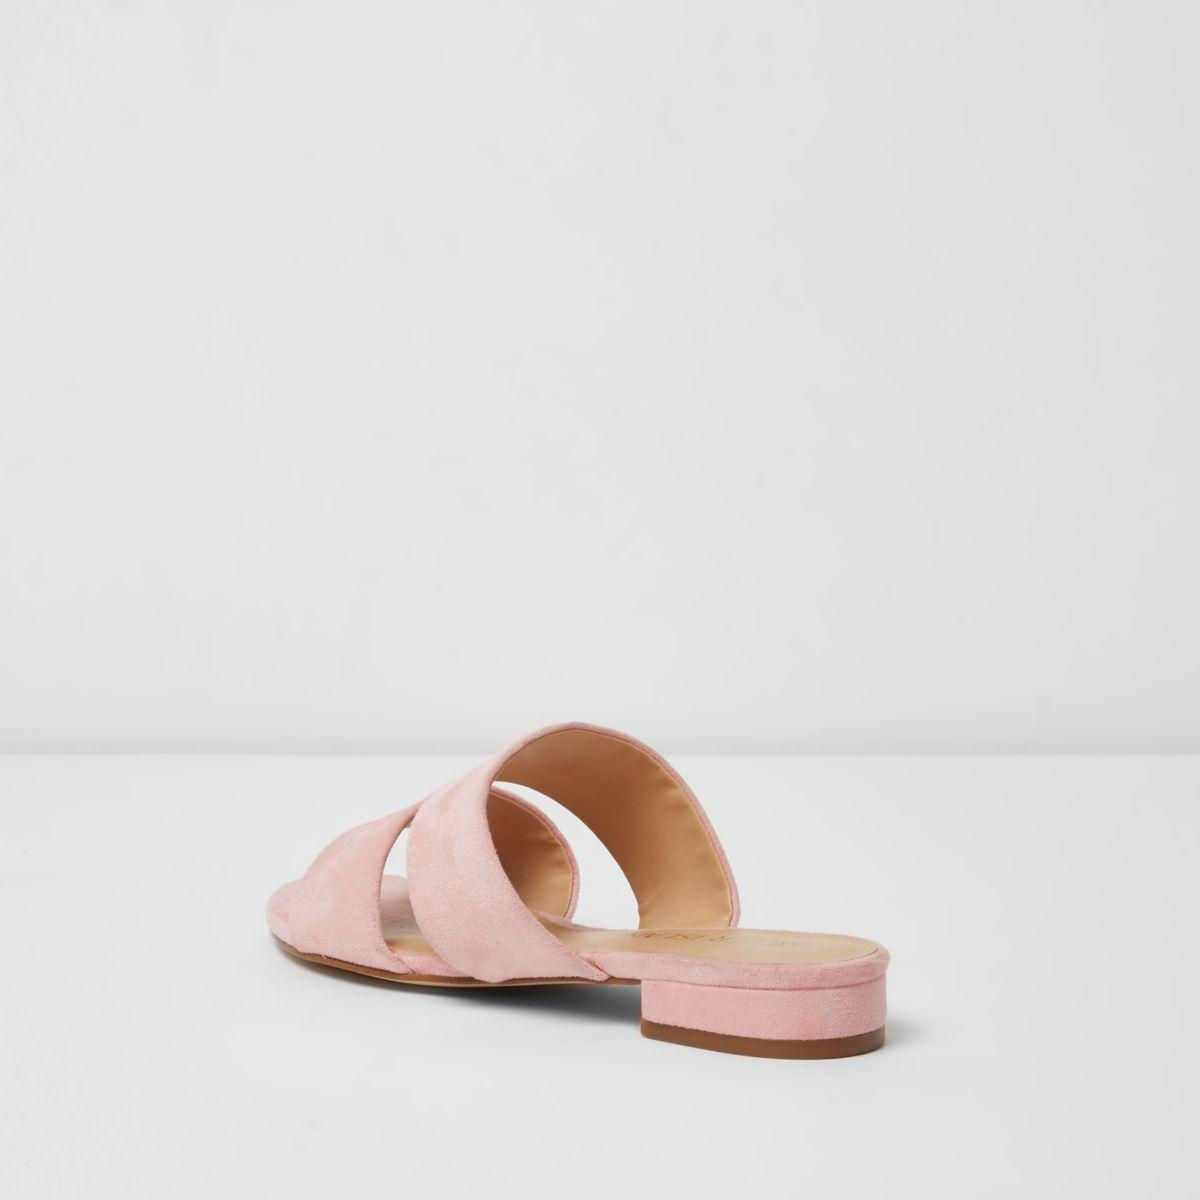 River Island Wide Fit Mules - pink 6kqN3KW1